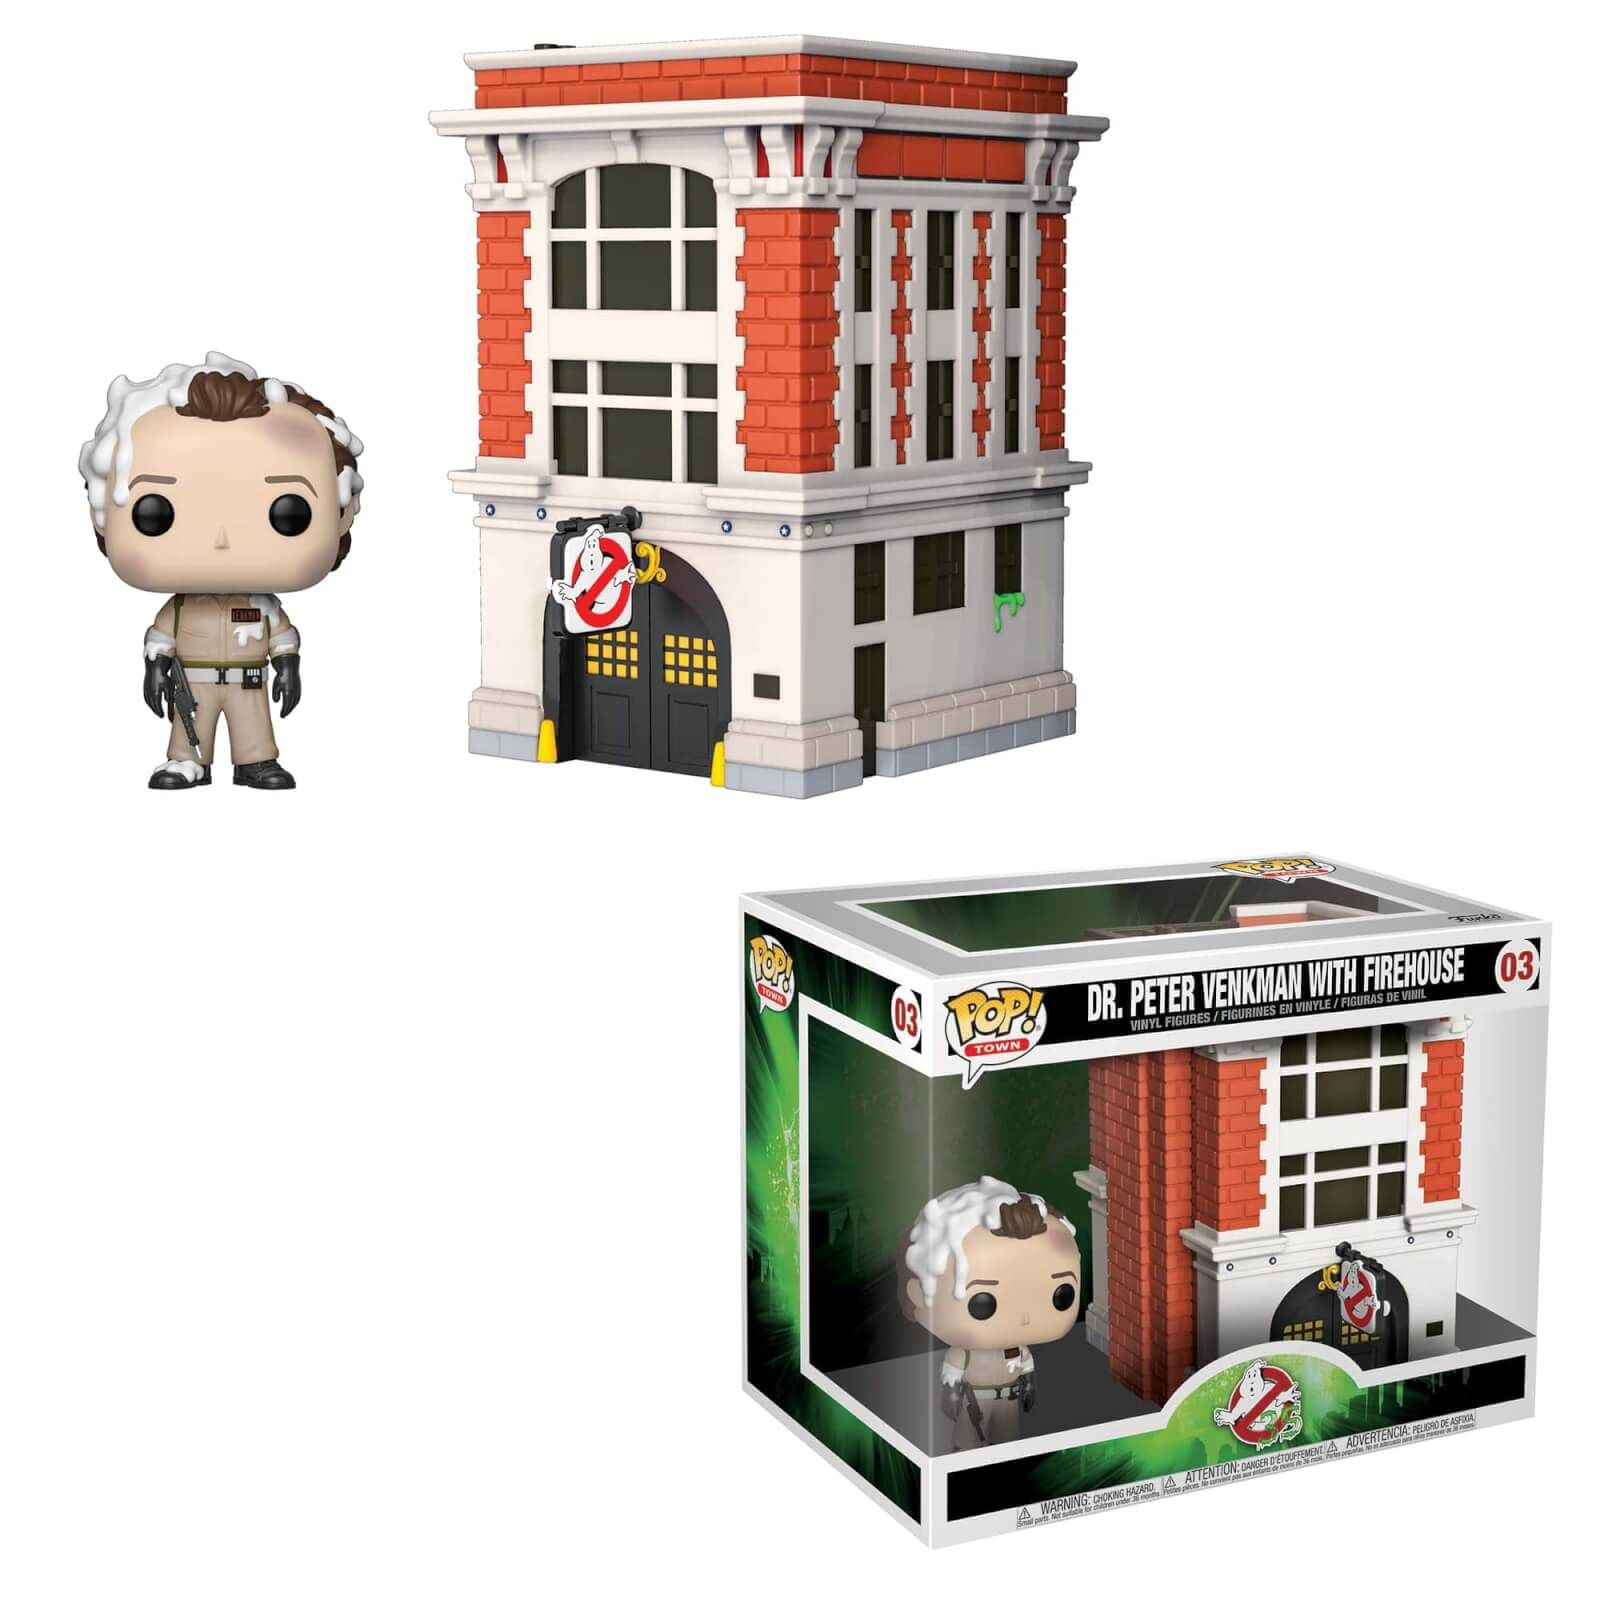 Town Peter with Firehouse Pop Vinyl--Ghostbusters Pop